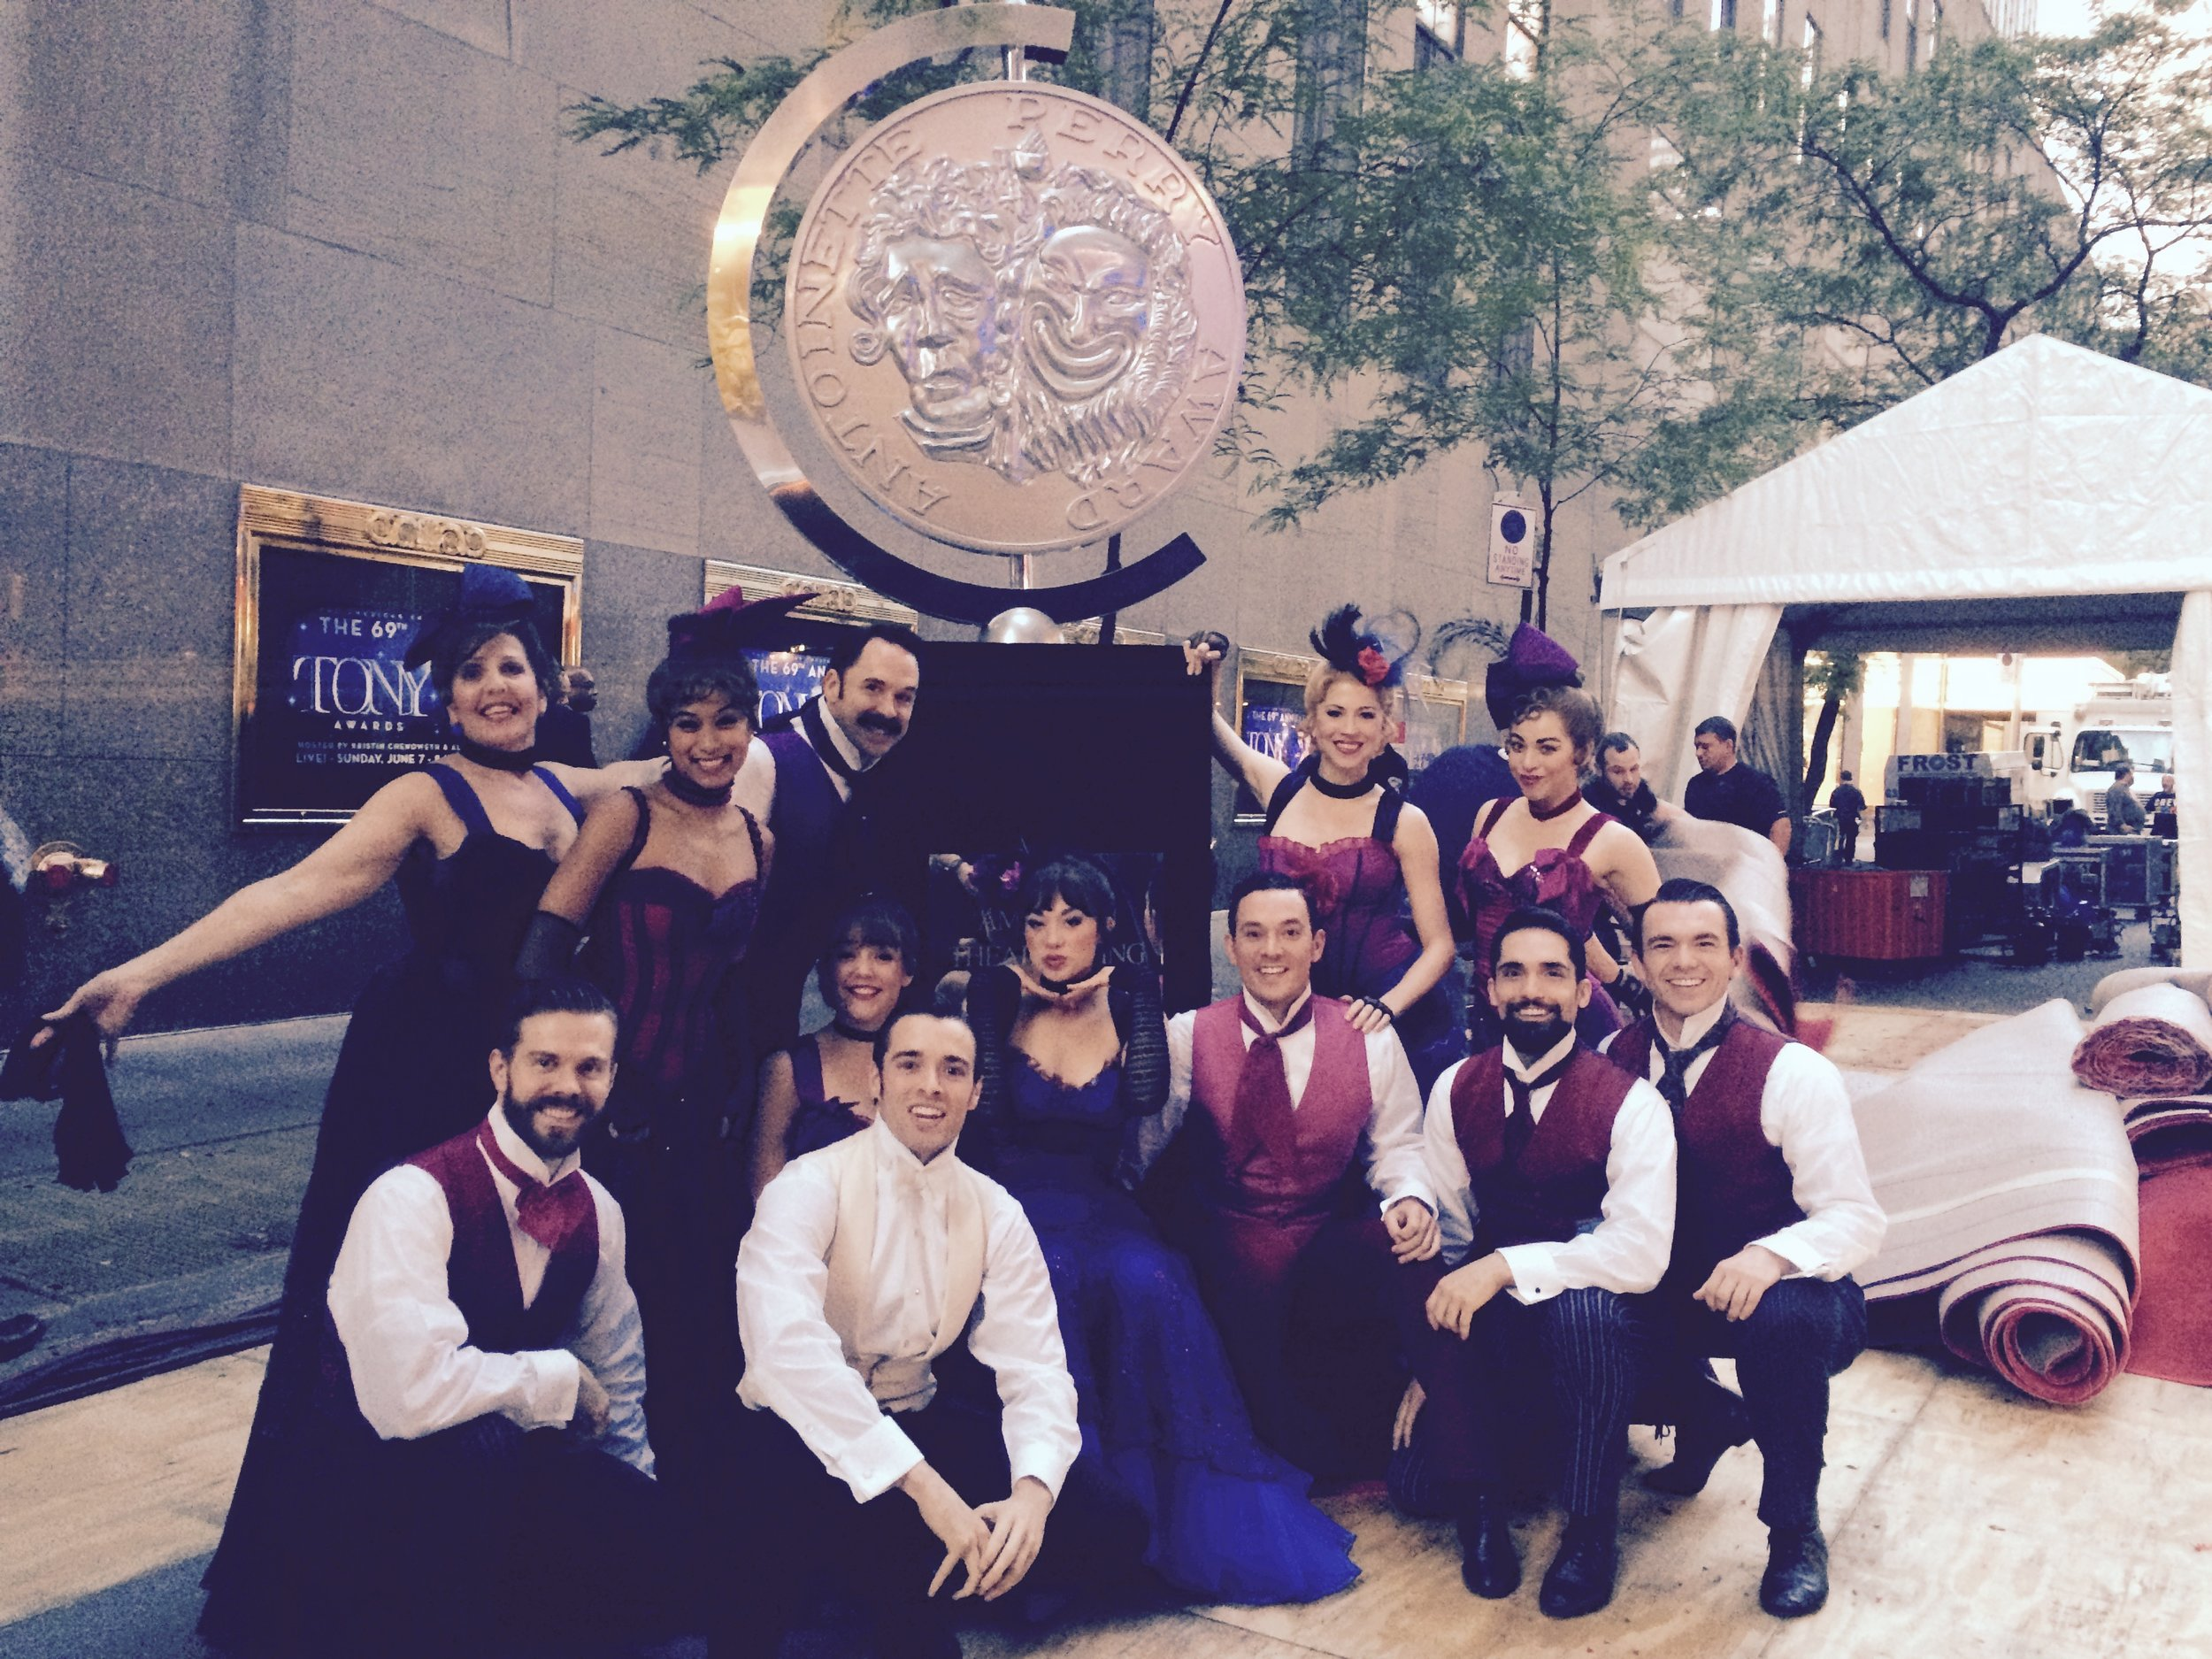 The cast after our performance at the 2015 Tony Awards. Standing: Madeline Doherty, Karla Puno Garcia, James Patterson, Ashley Blair Fitzgerald, Hannah Florence. Kneeling: myself, Cameron Adams, Corey Cott, Vanessa Hudgens, Amos Wolff, Manny Stark, Max Clayton.